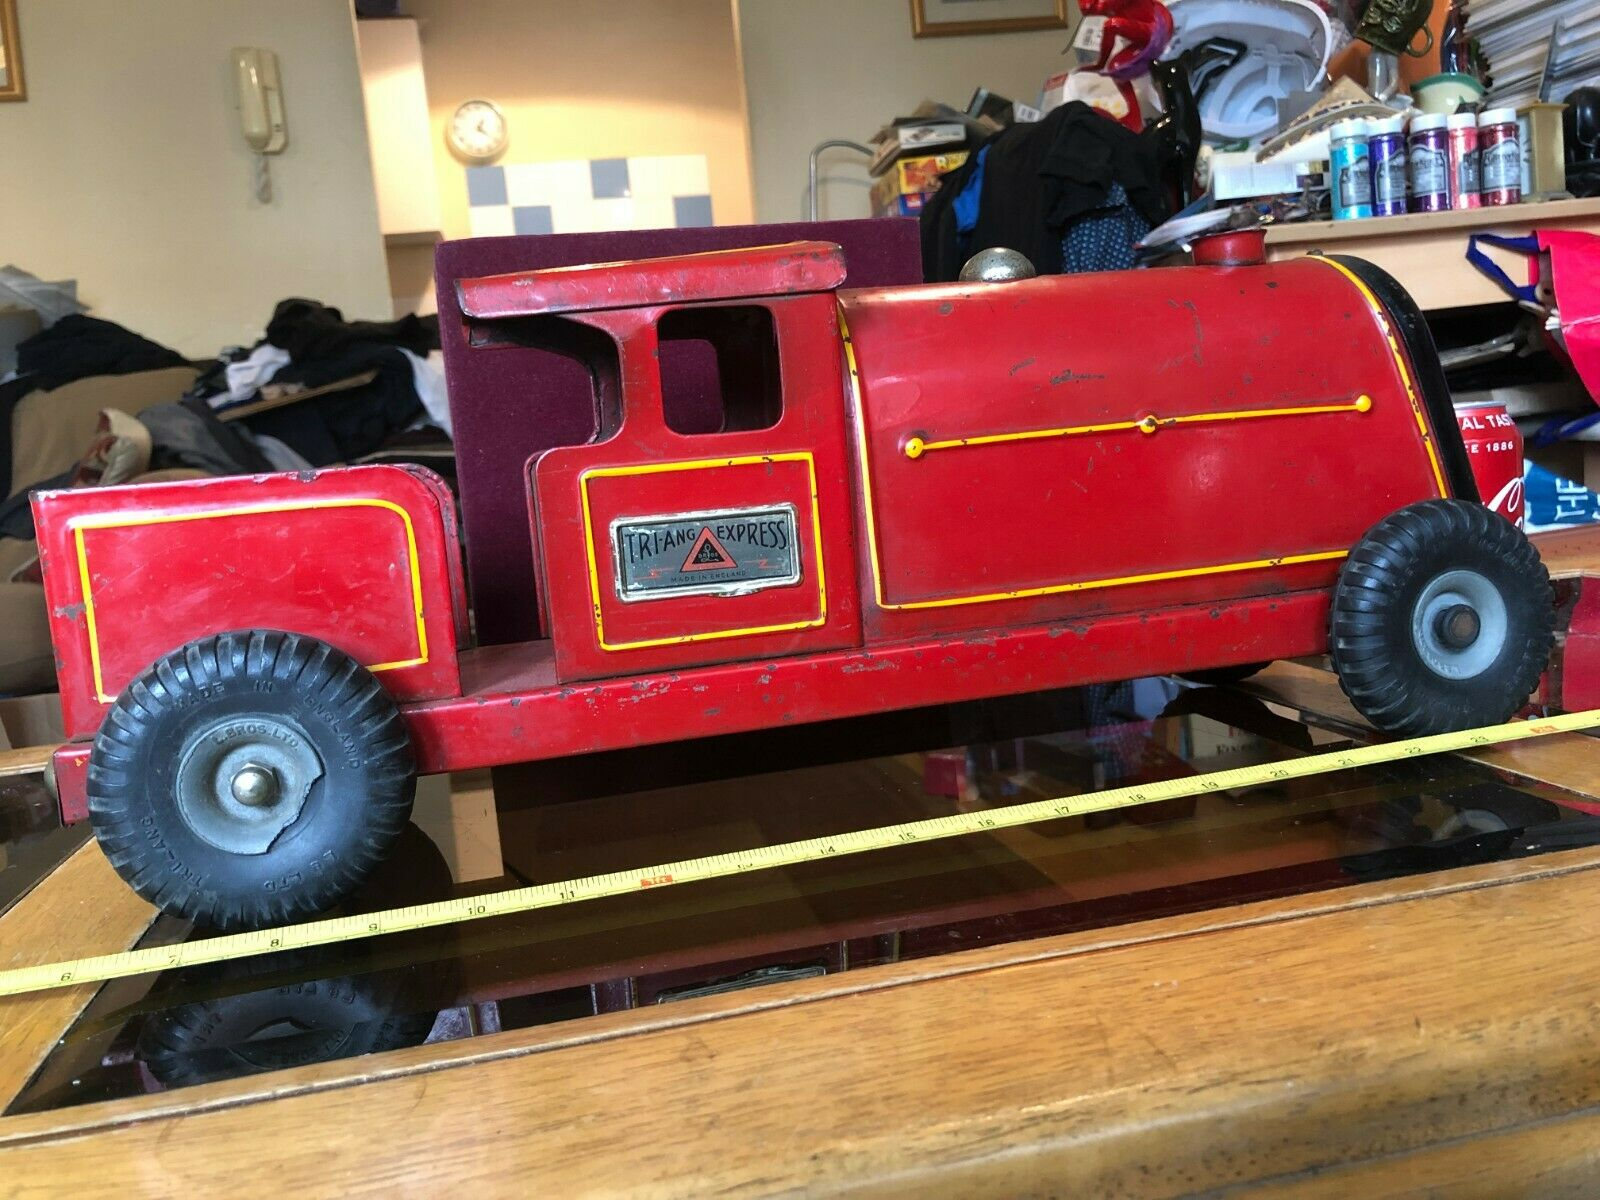 Red Tri-ang Express Train Toy Car Triang Vintage 50cm 50cm Long Metal Classic